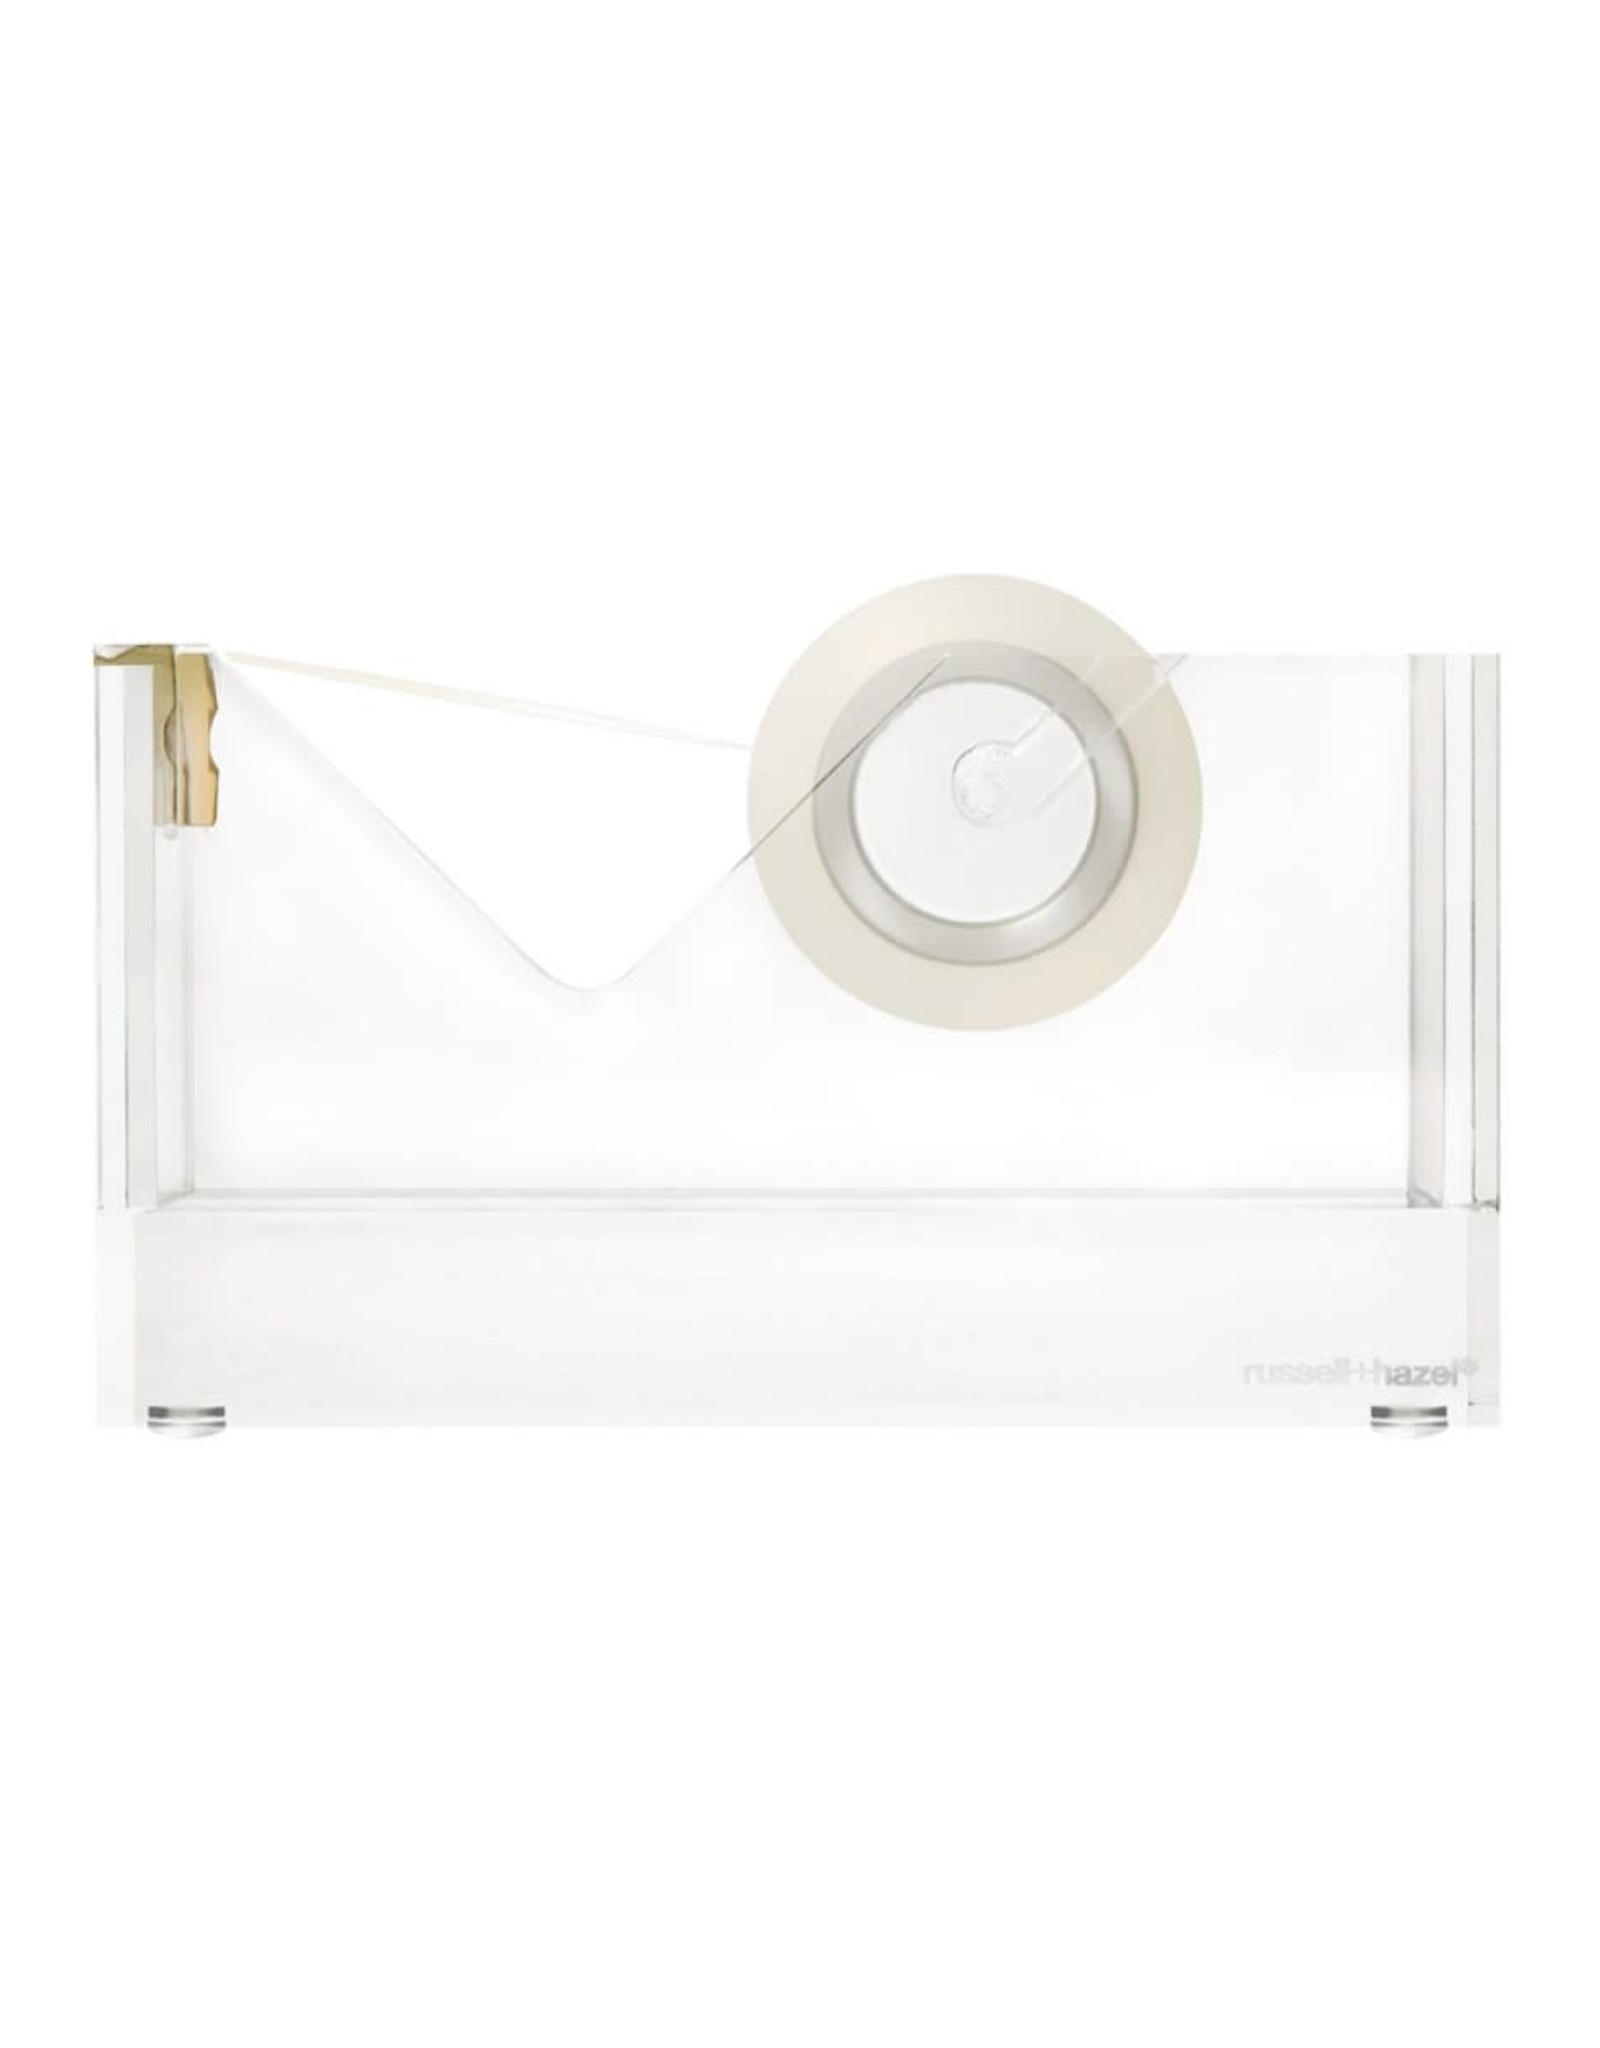 Russell + Hazel Acrylic Tape Dispenser